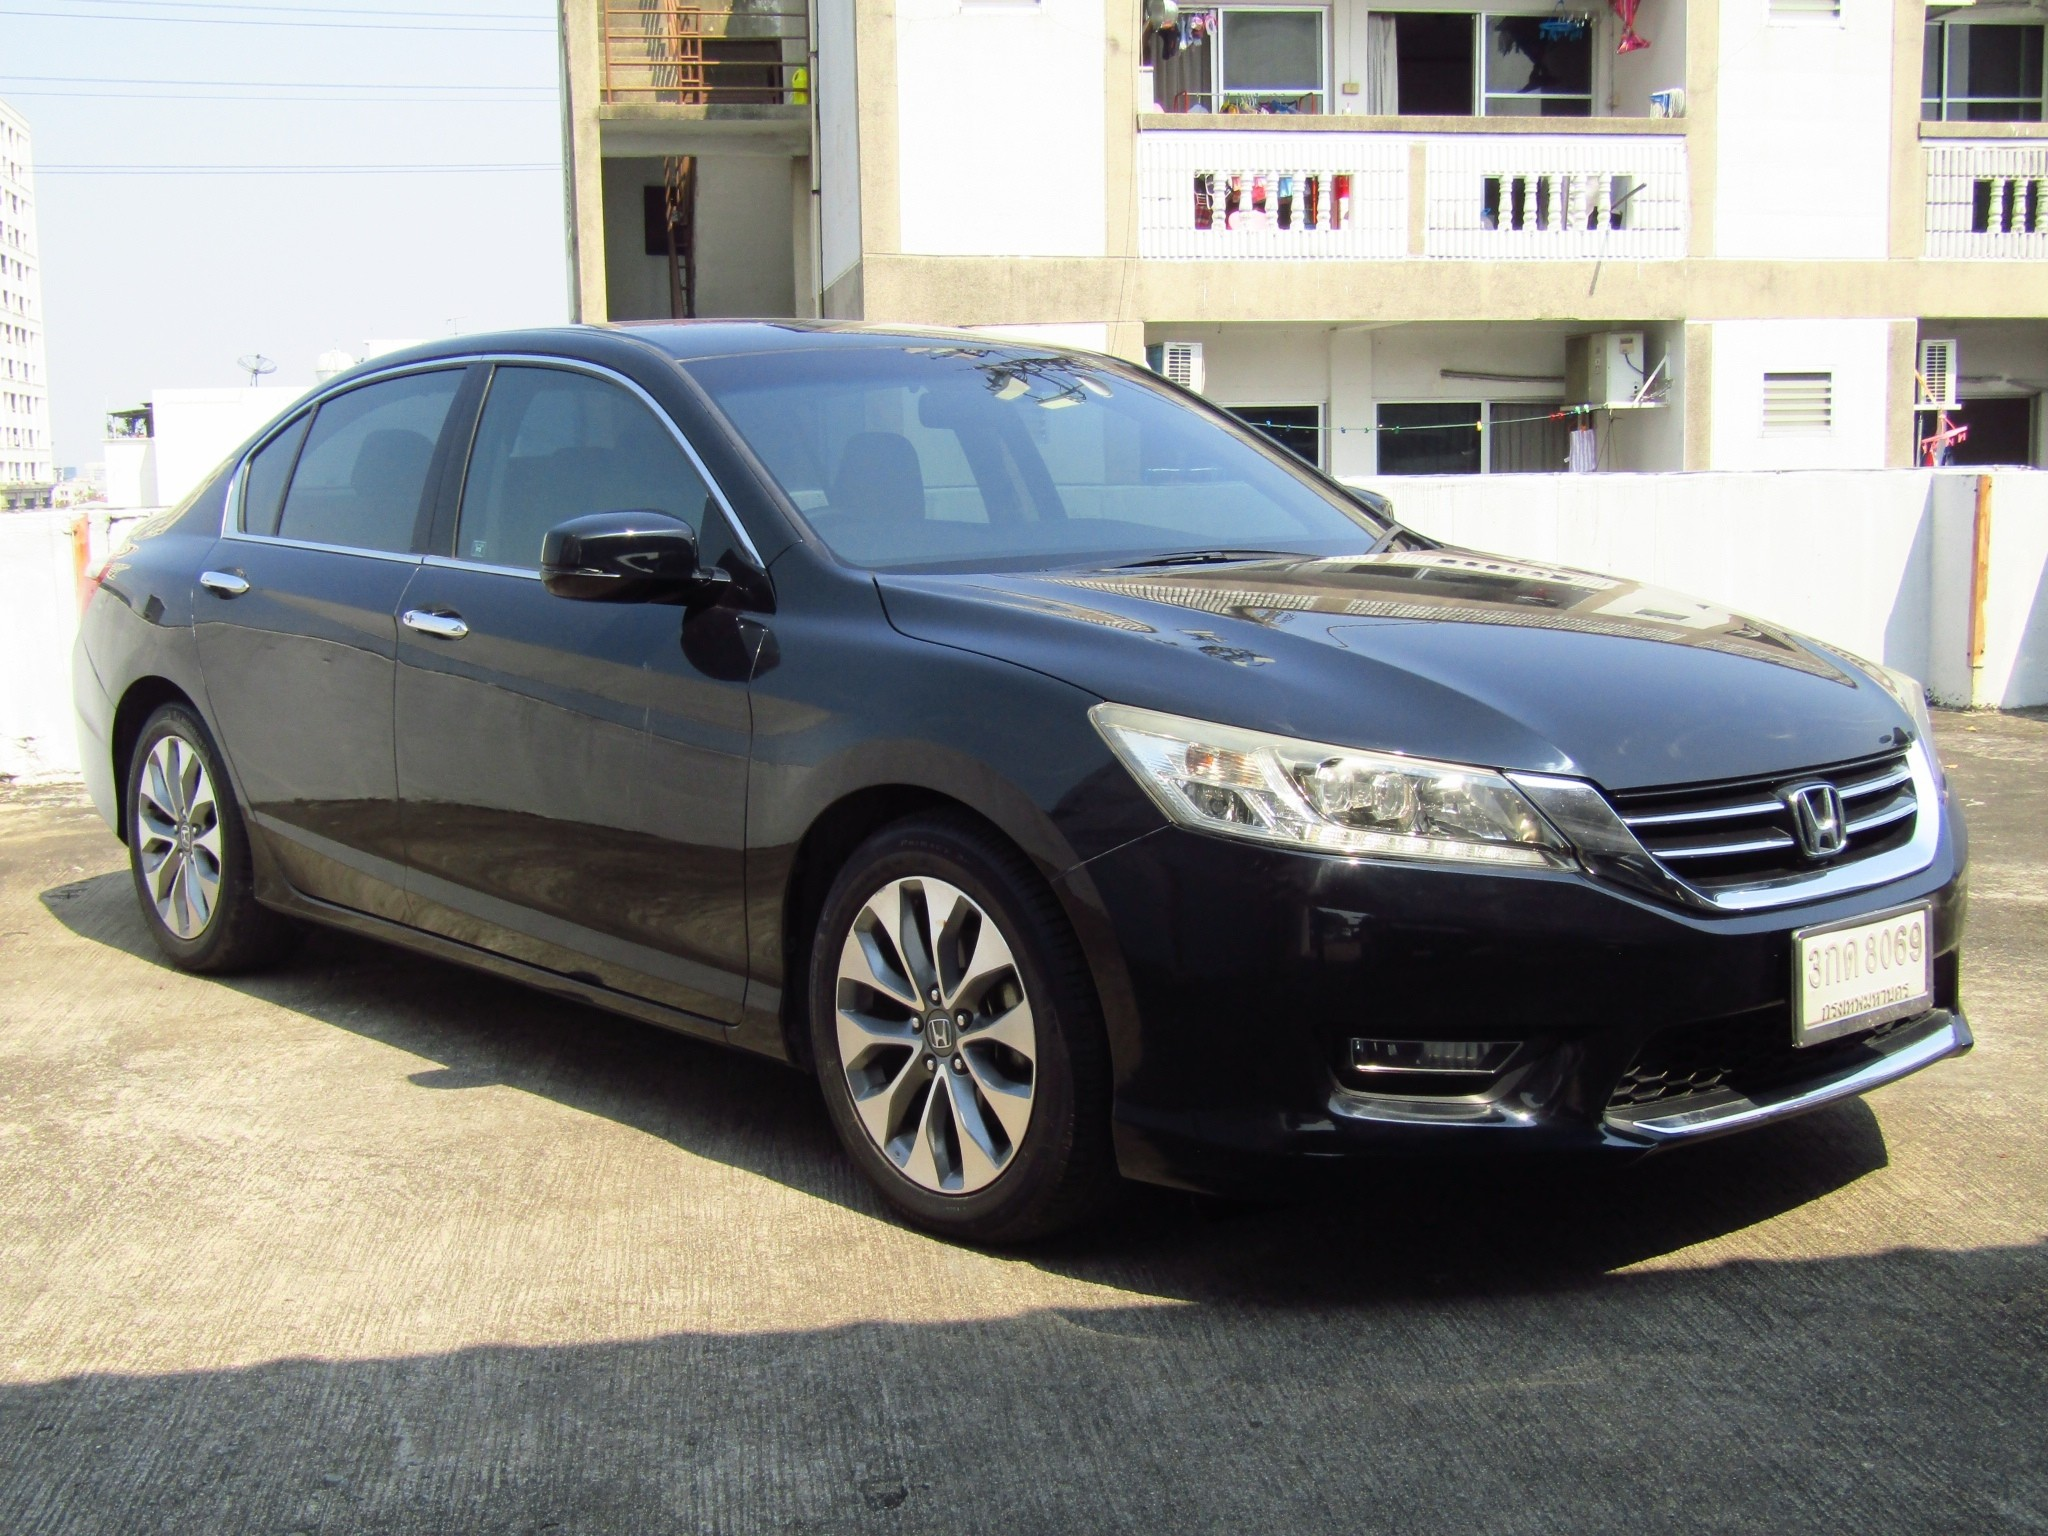 HONDA ACCORD (140,xxx) 2.4 EL I-VTEC SEDAN AT (ผ่อน 11,880 บาท / 60 งวด)